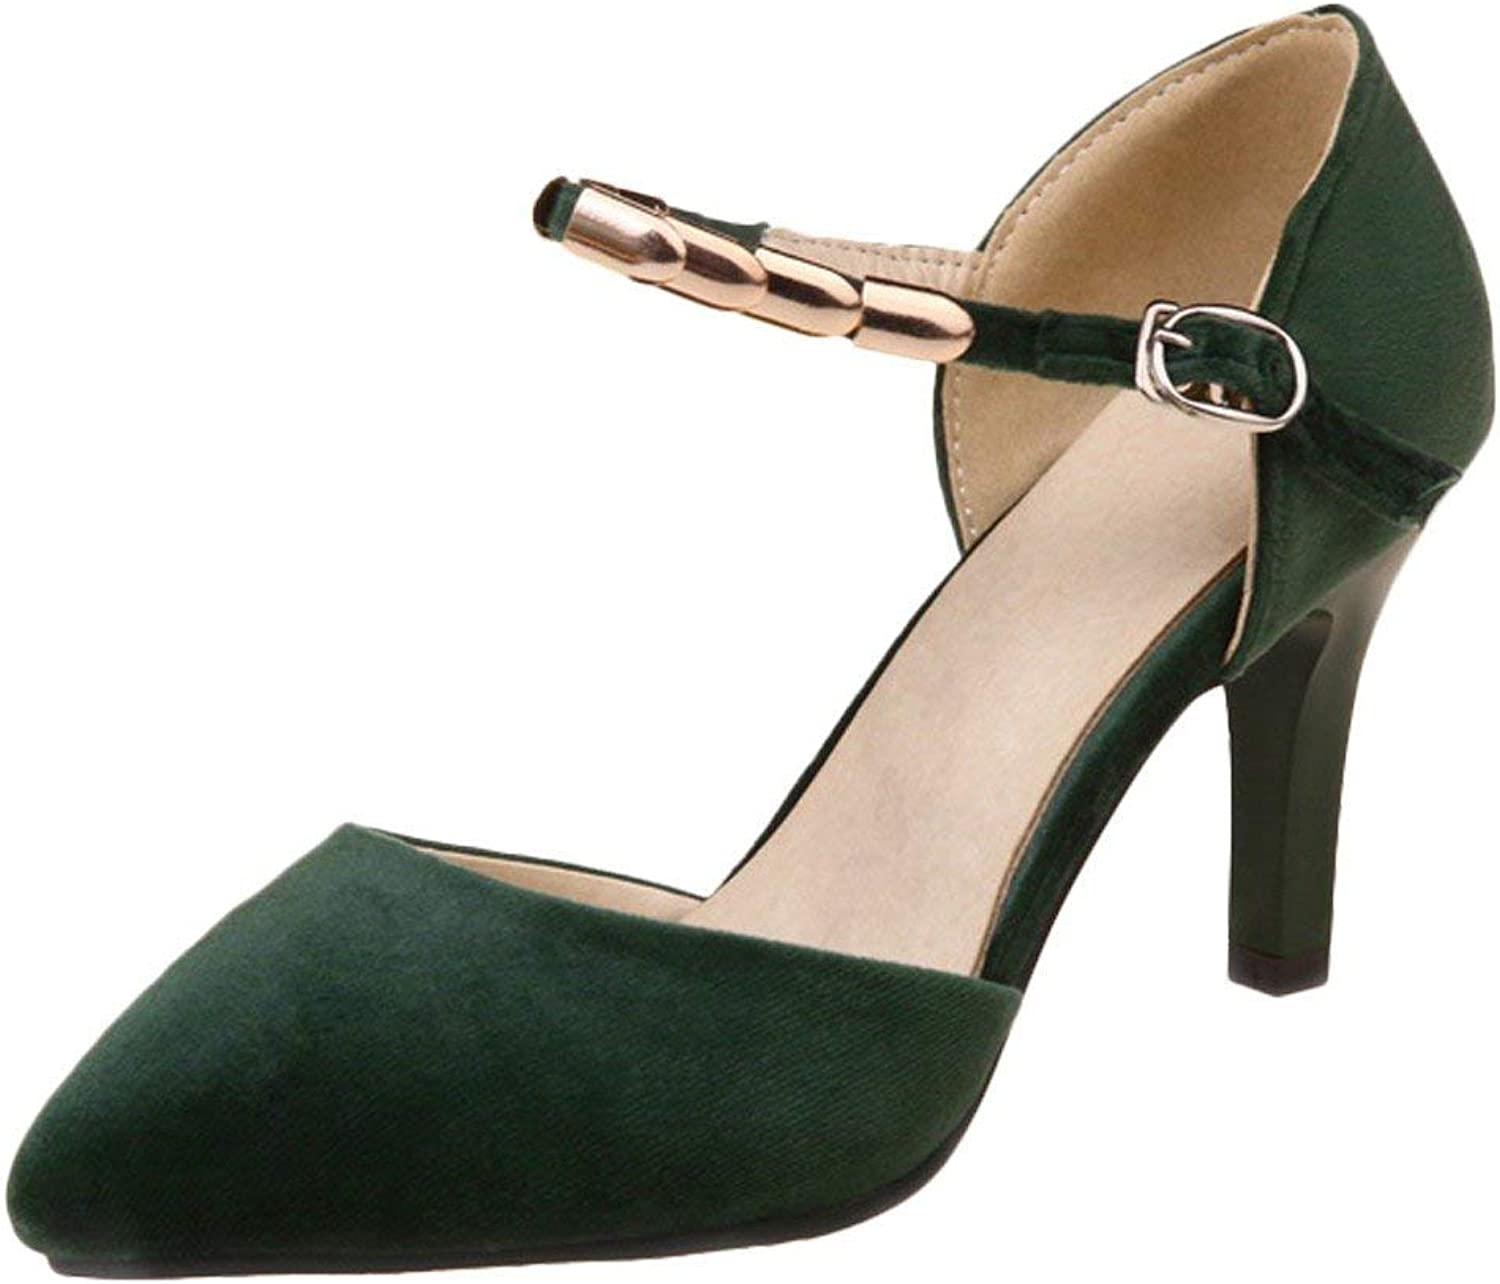 Ghssheh Women's Ankle Strap High Heel Pointed Toe D'Orsay shoes Dark Green 6.5 M US